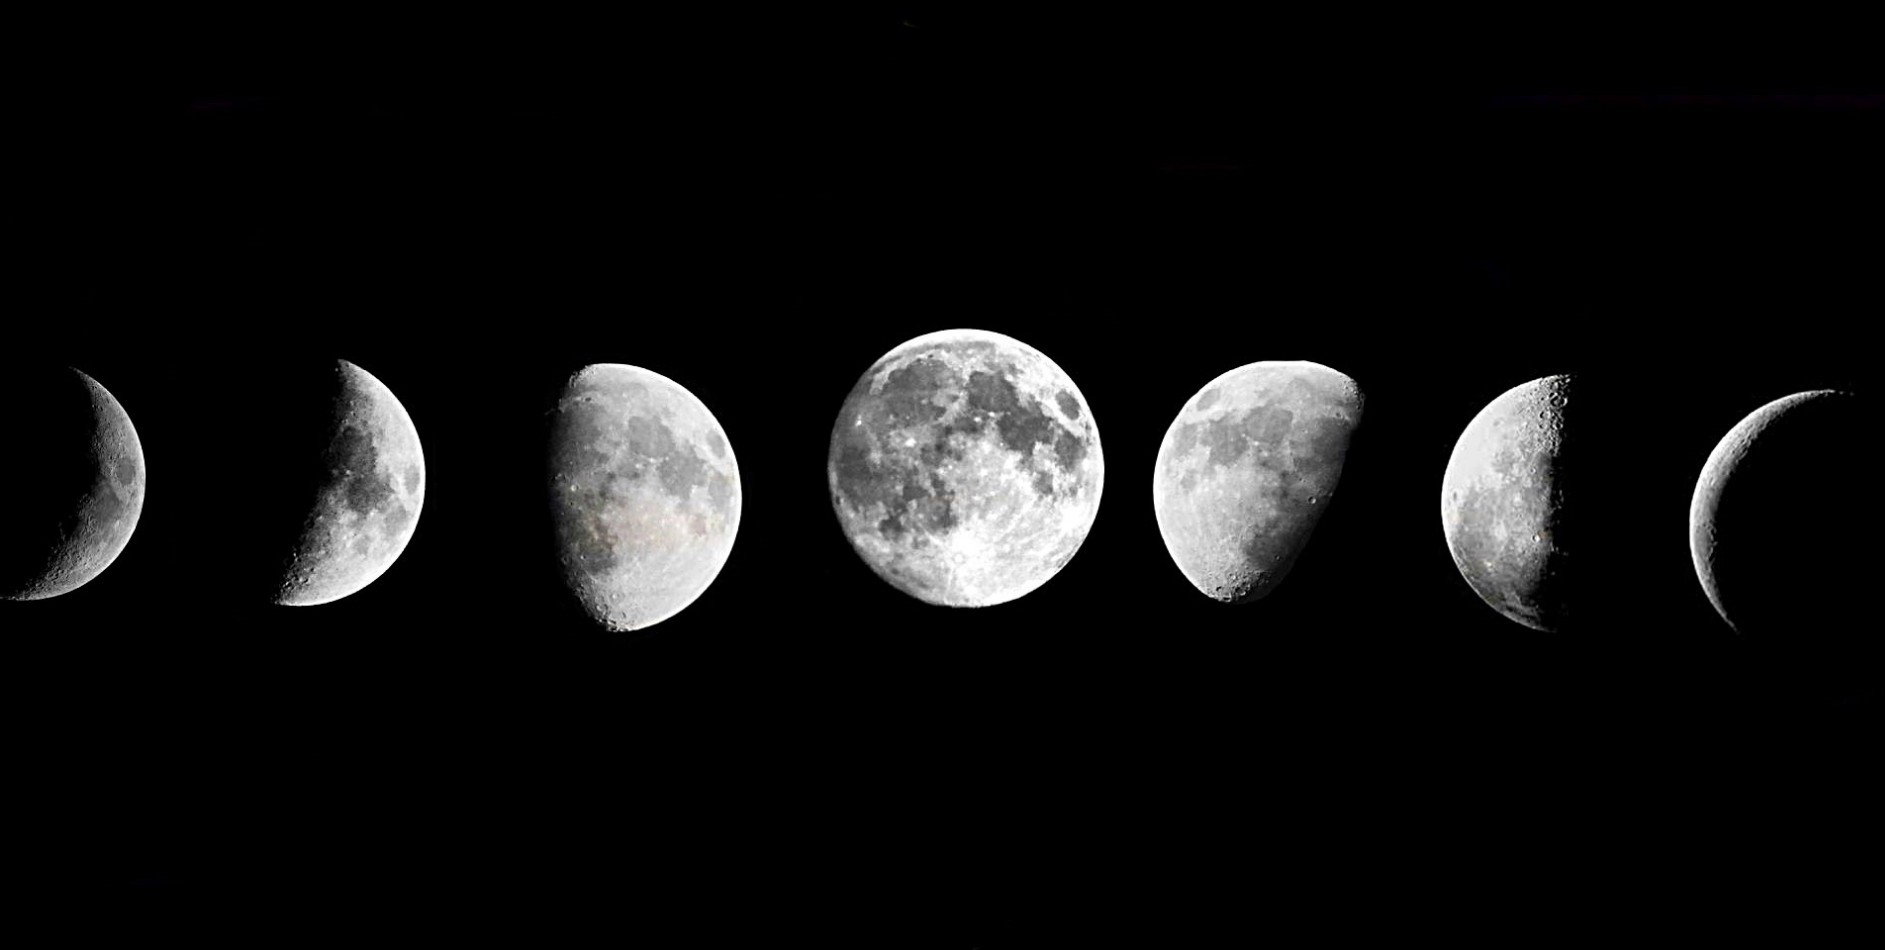 A picture of a moon's full phases from new to full, representing Mooning, a cryptocurrency slang word